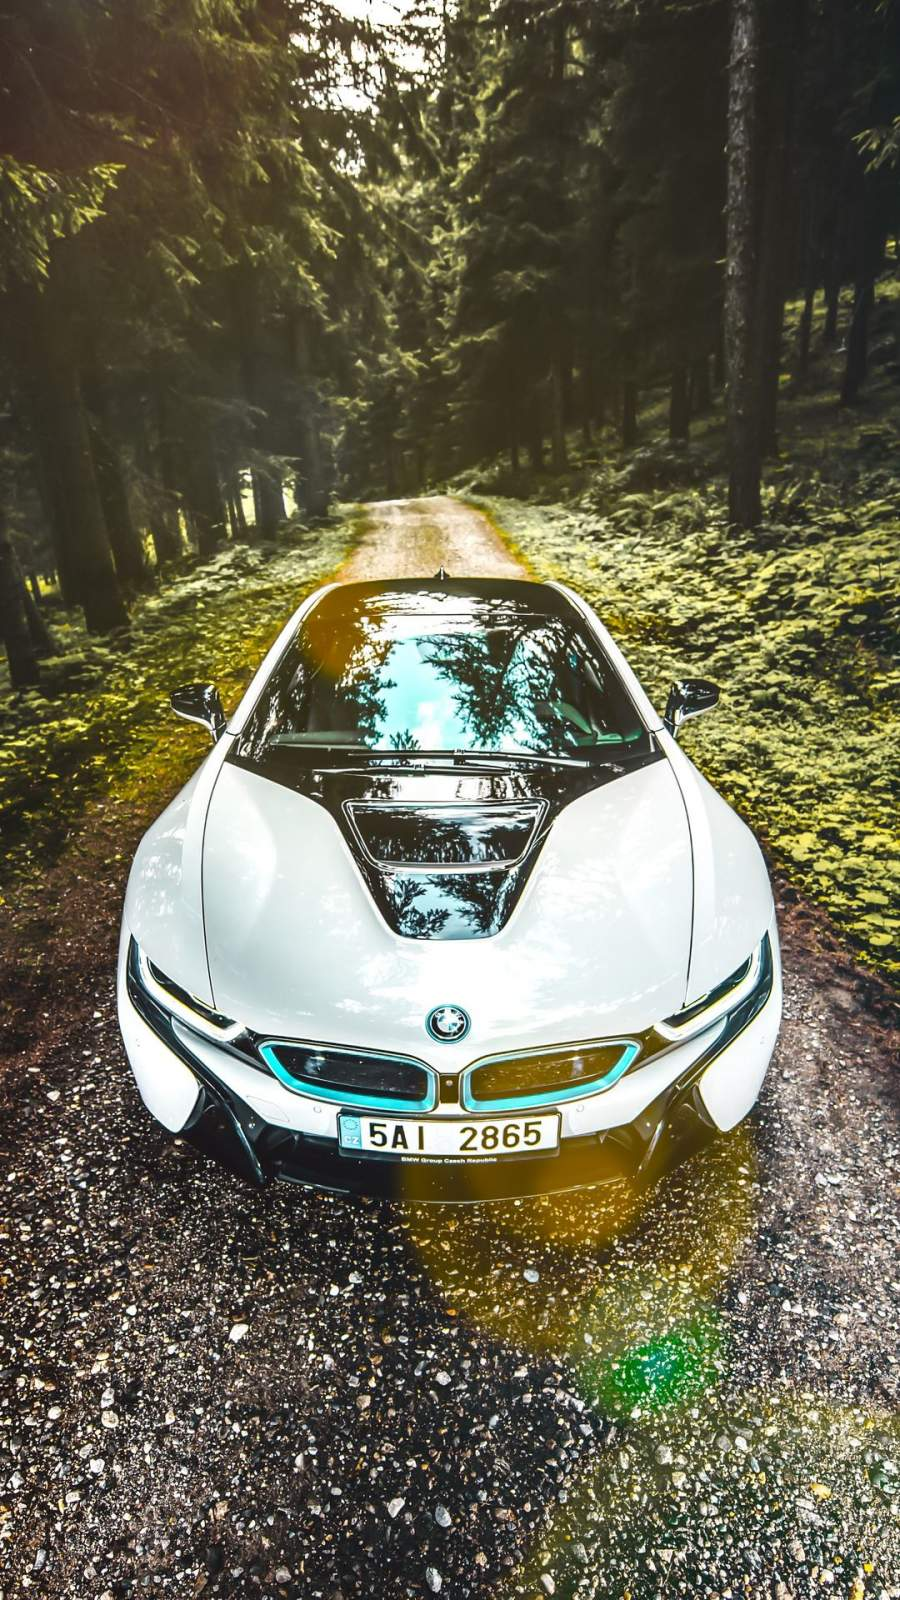 Bmw I8 4k Iphone Wallpaper Iphone Wallpapers Iphone Wallpapers